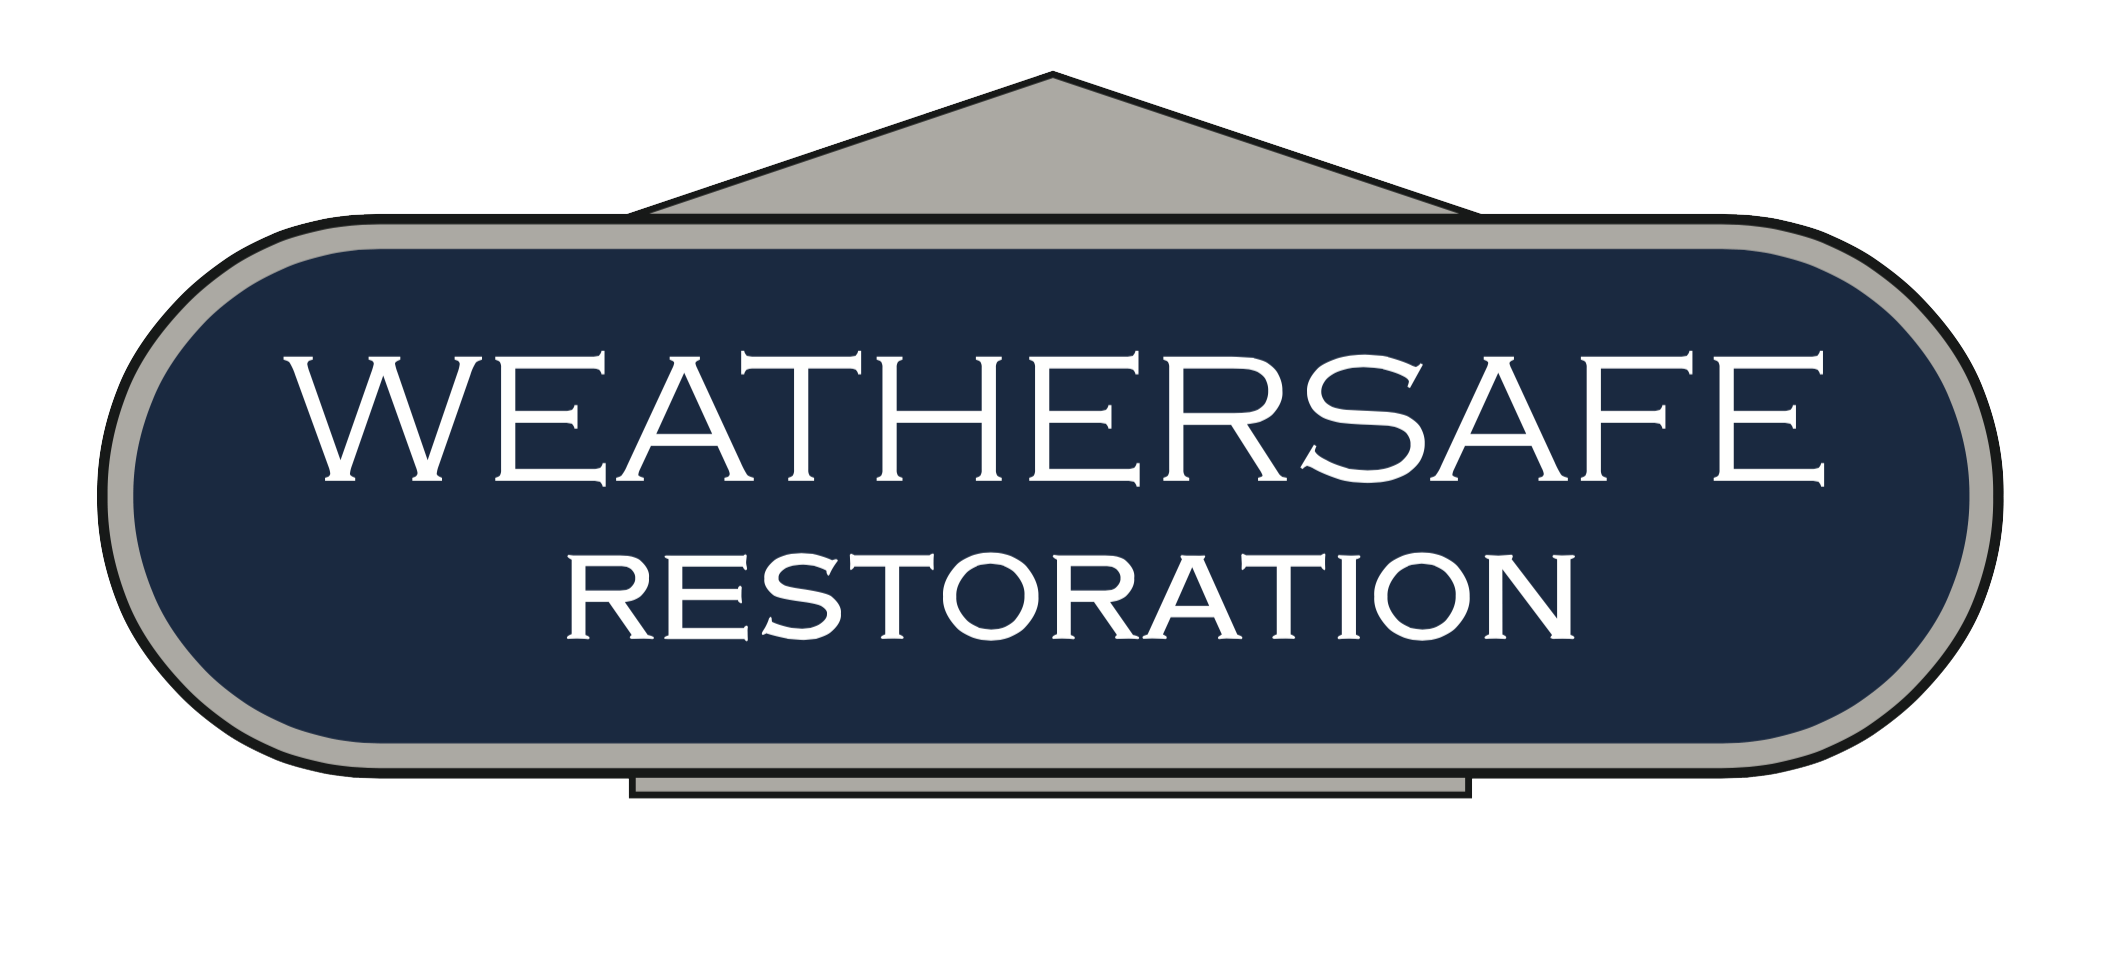 Weathersafe Restoration